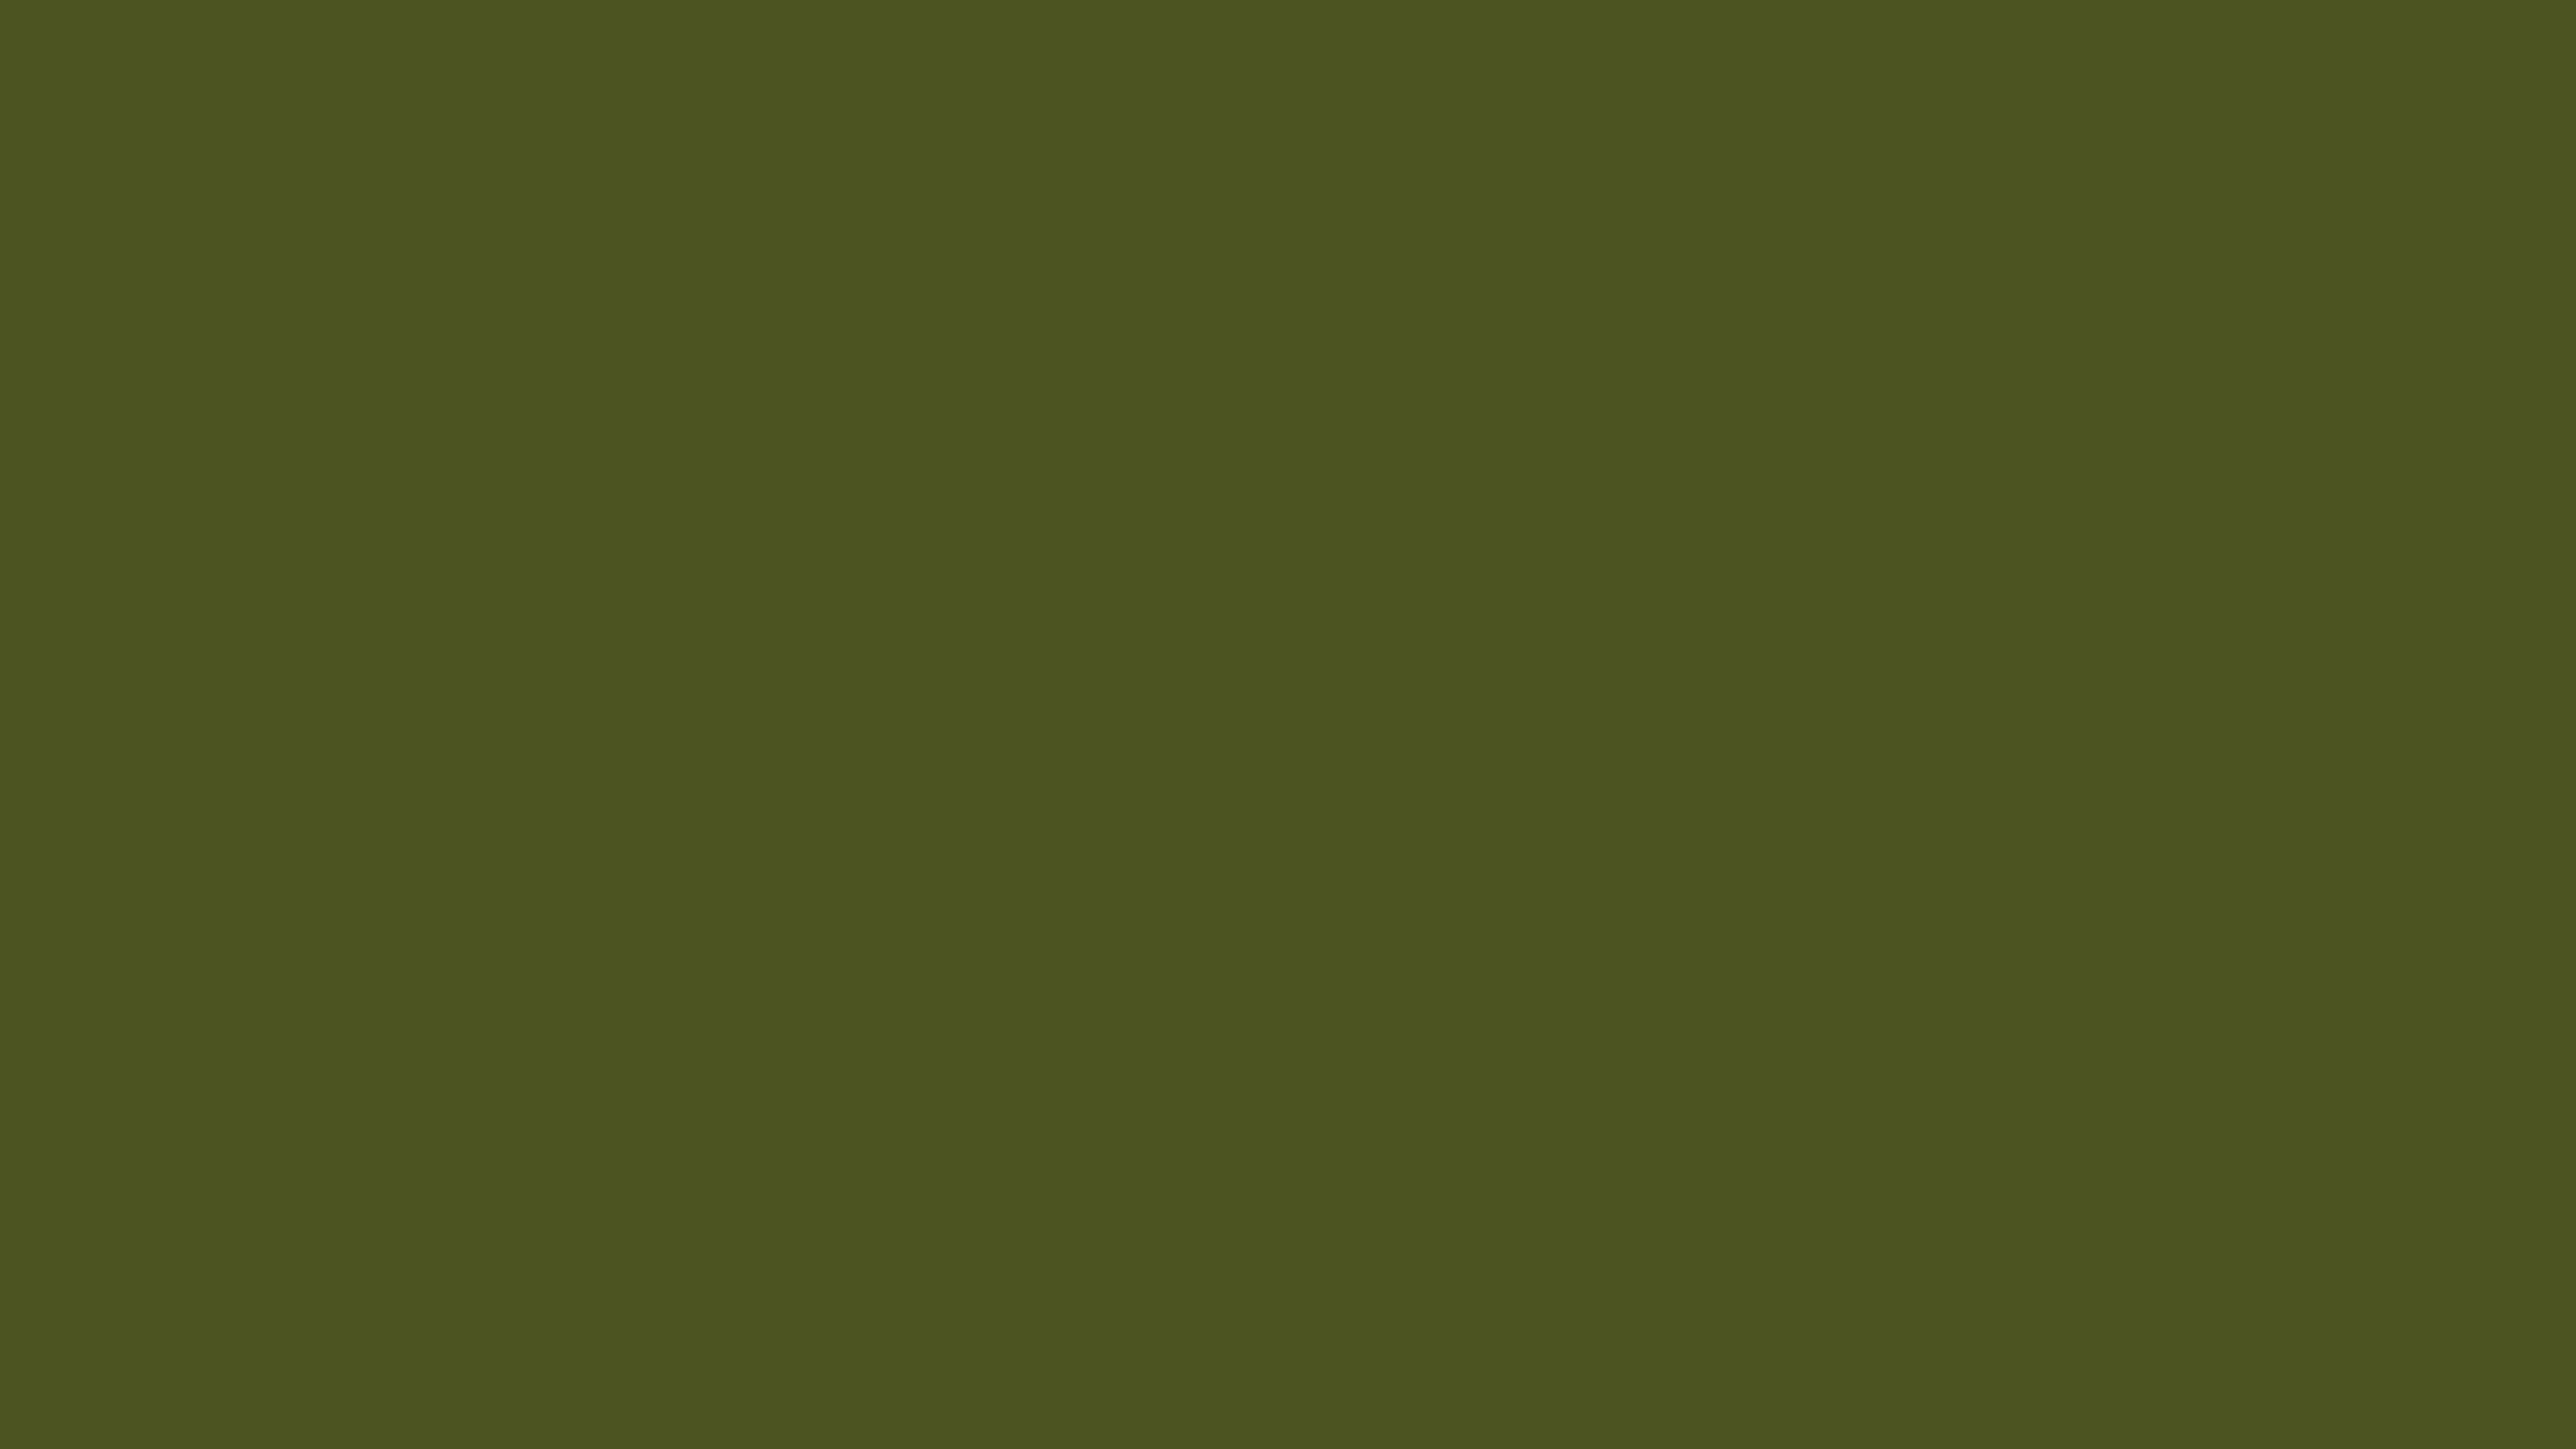 3840x2160 Army Green Solid Color Background 3840x2160